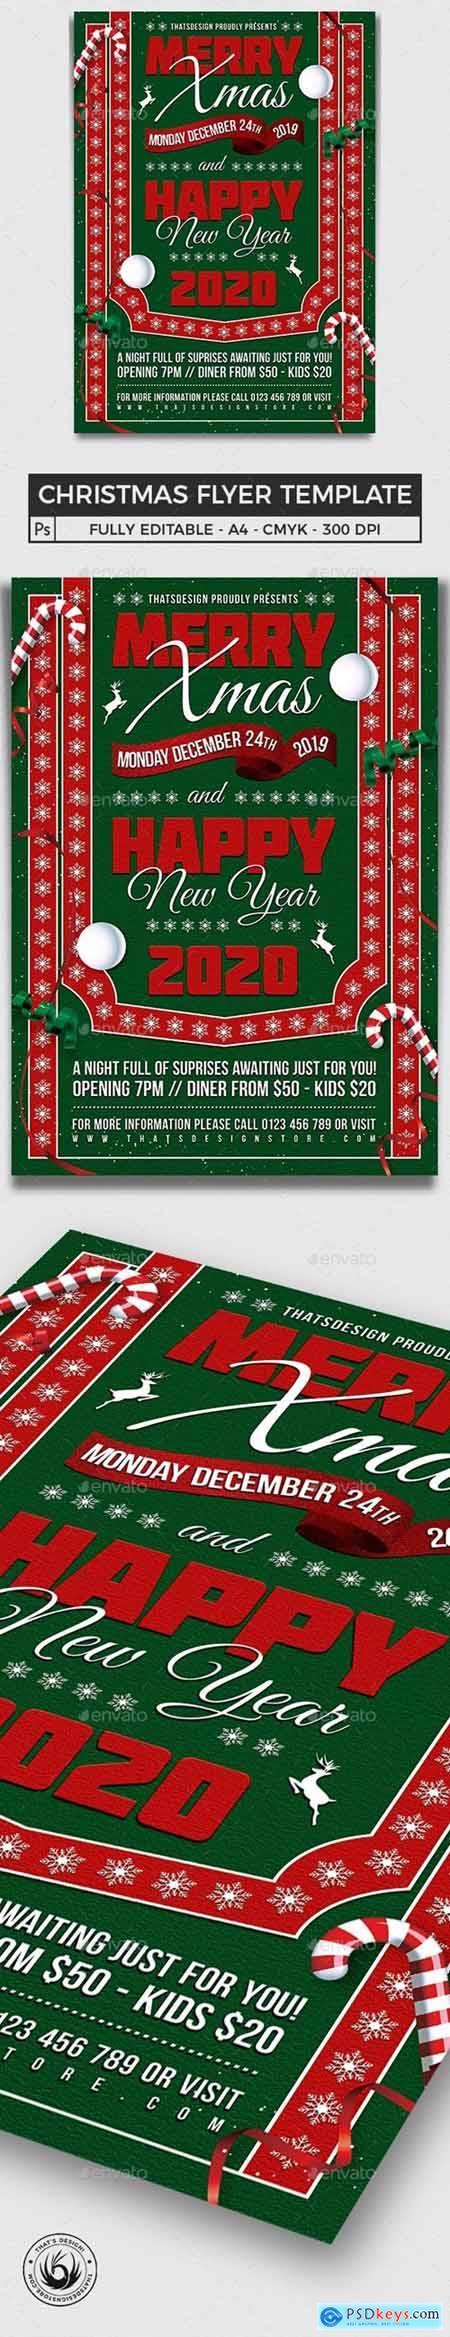 Christmas Eve Flyer Template V10 24875144